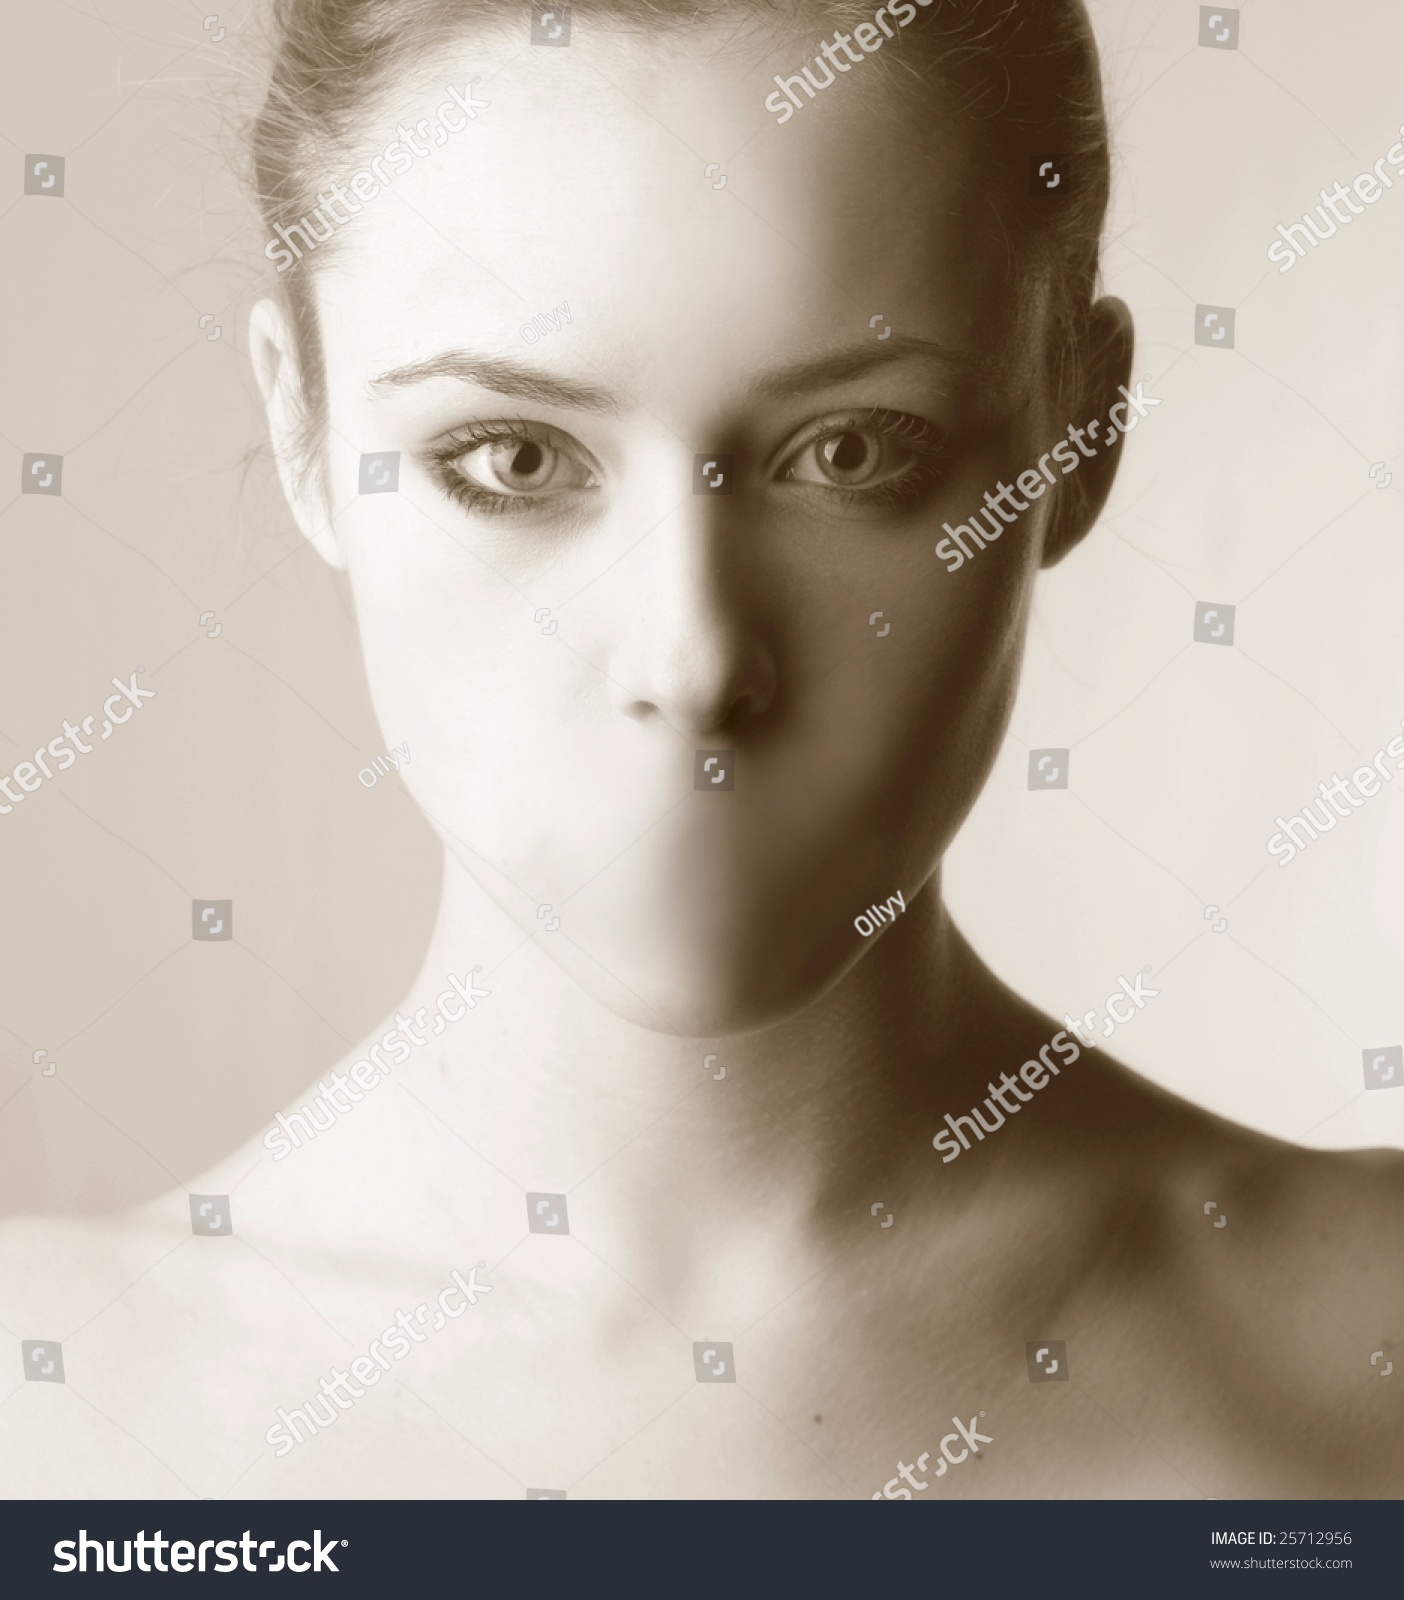 Portrait Beautiful Girl No Mouth Stock Photo 25712956 ...